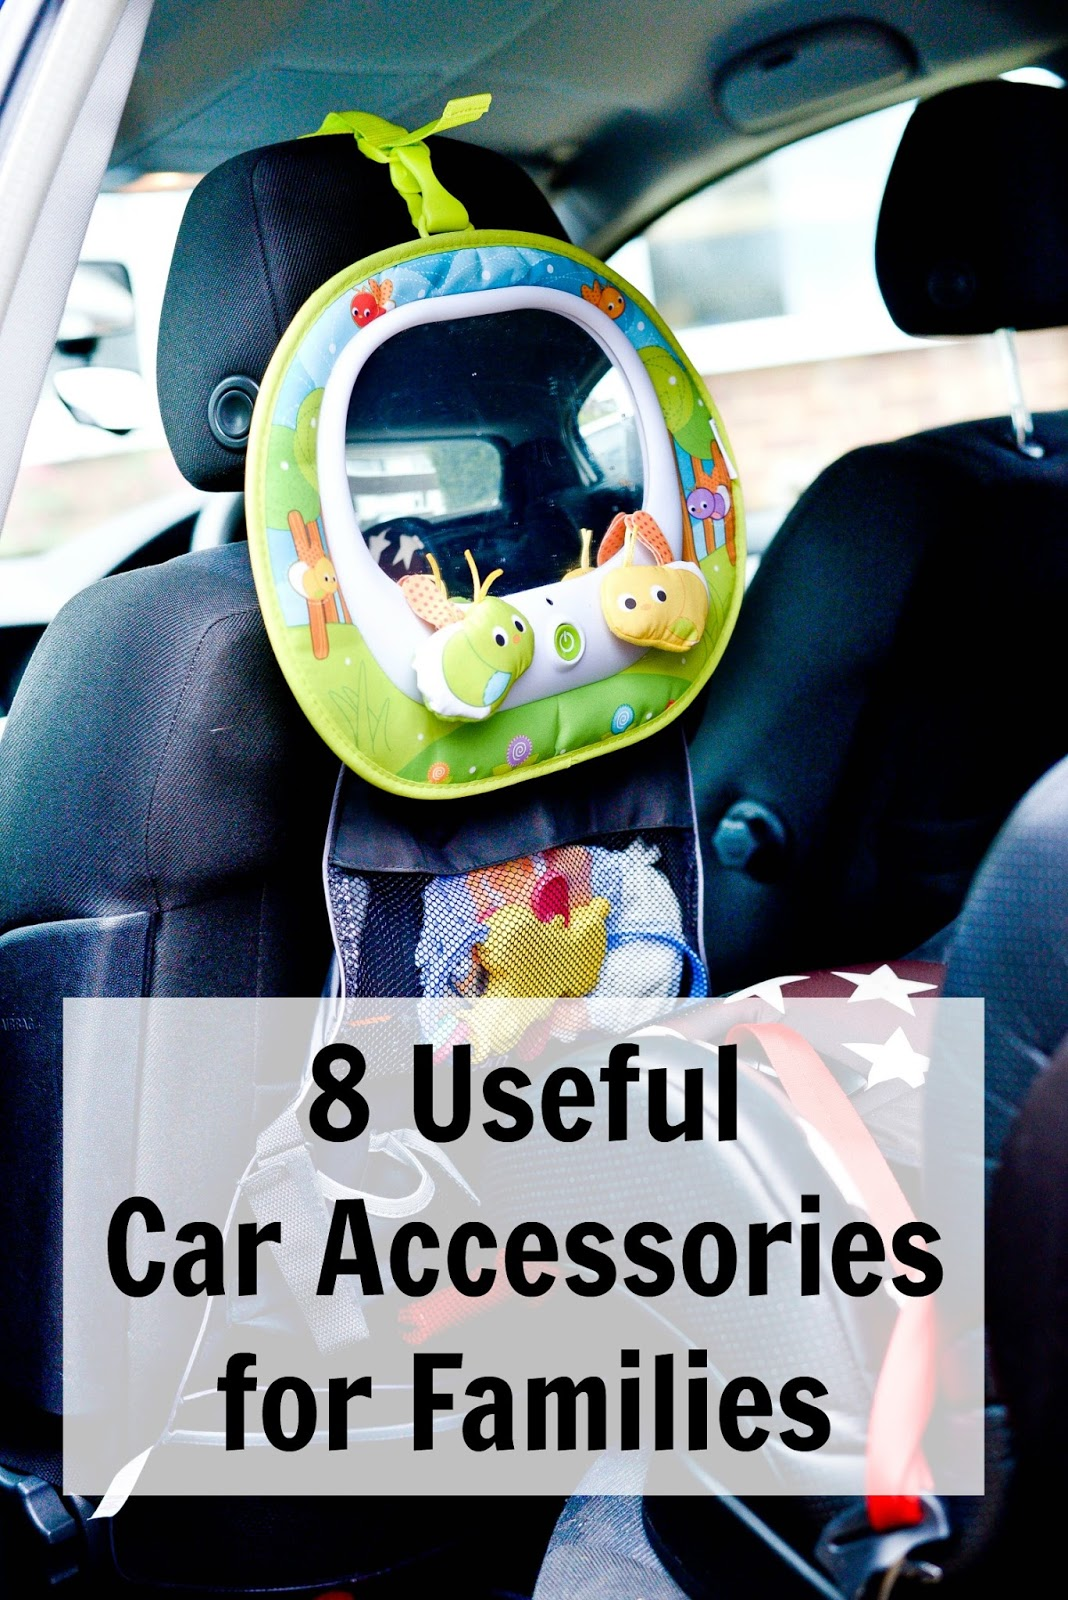 8 Useful Car Accessories for Families - UK Family, Travel ...